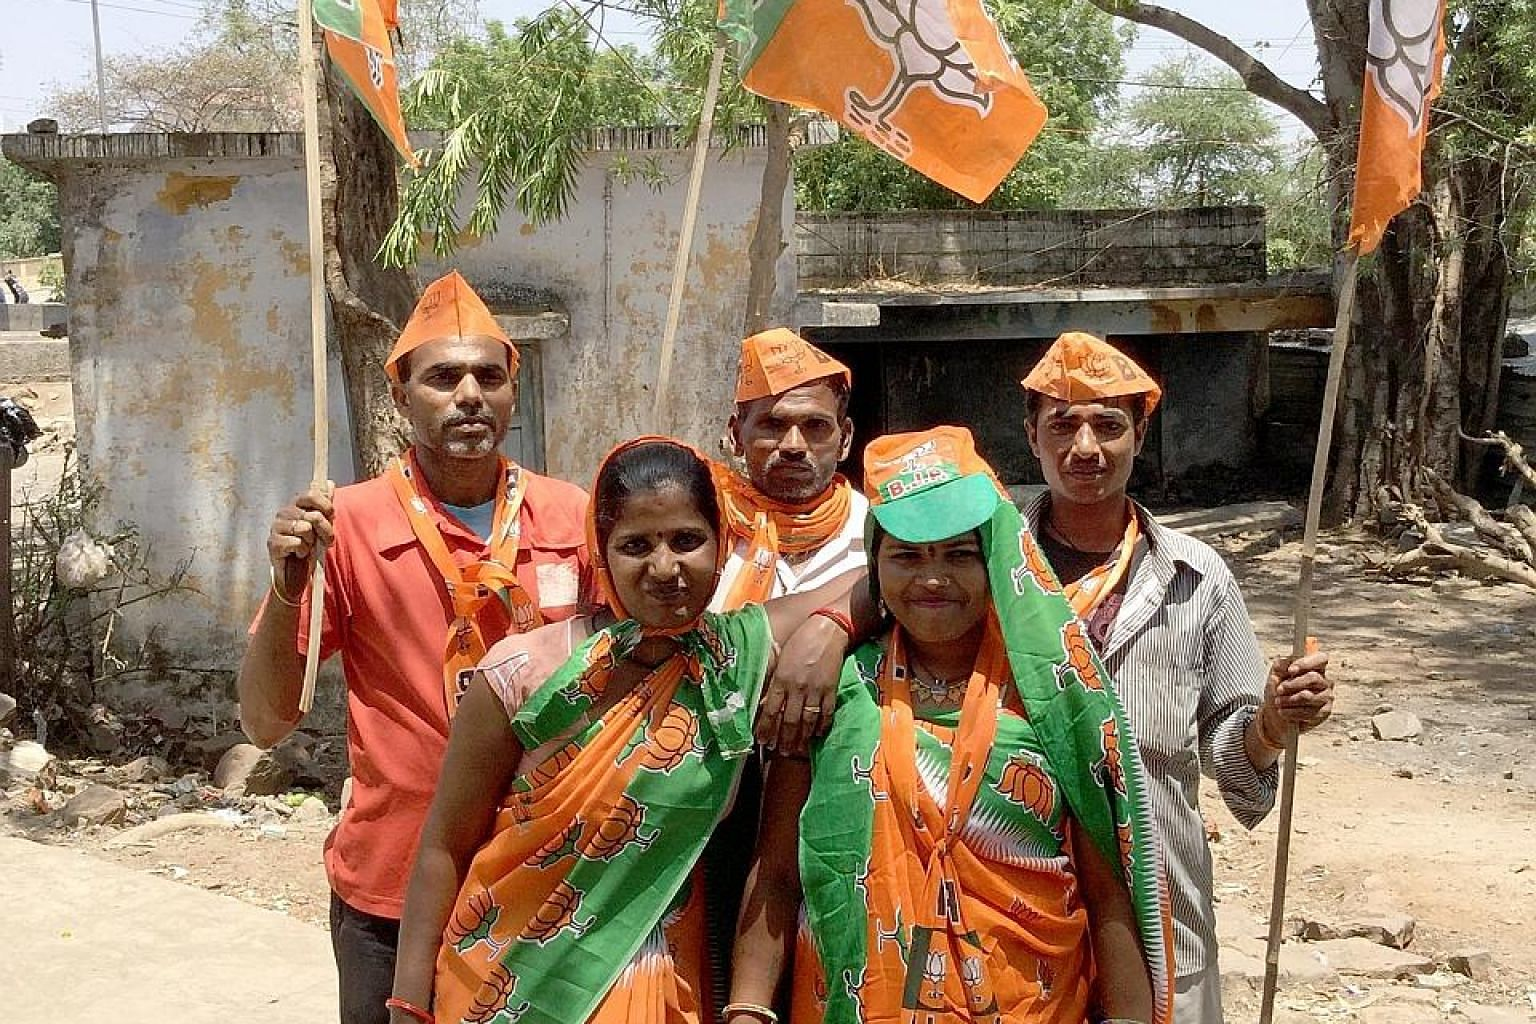 BJP supporters in Bhopal wait to welcome candidate Pragya Singh Thakur, an alleged conspirator in a 2008 terrorism case.